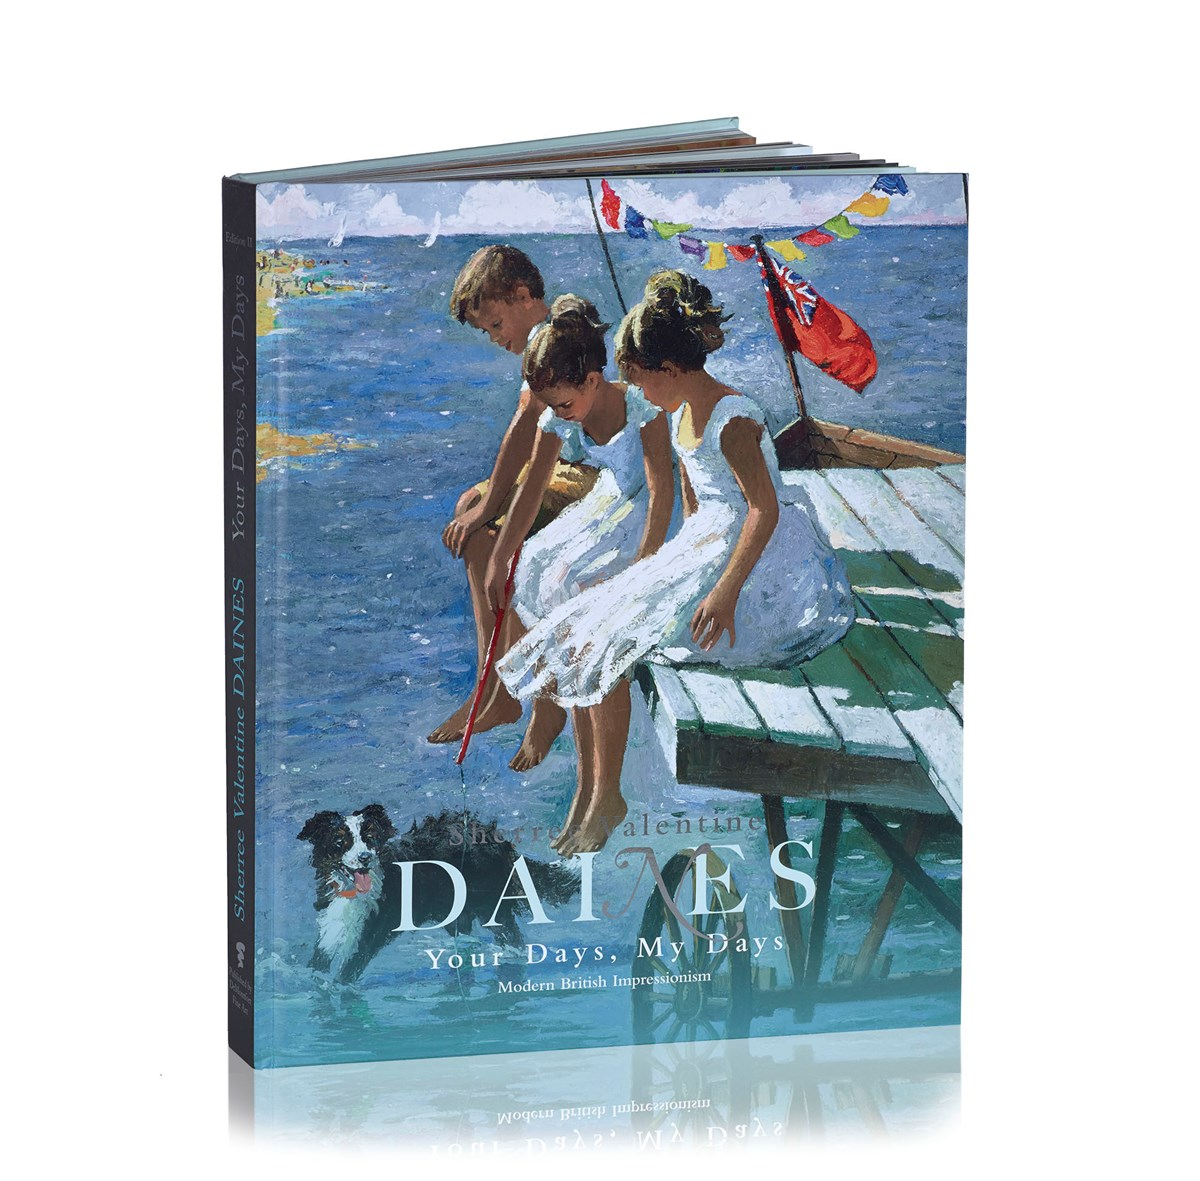 Your Days, My Days by Sherree Valentine Daines